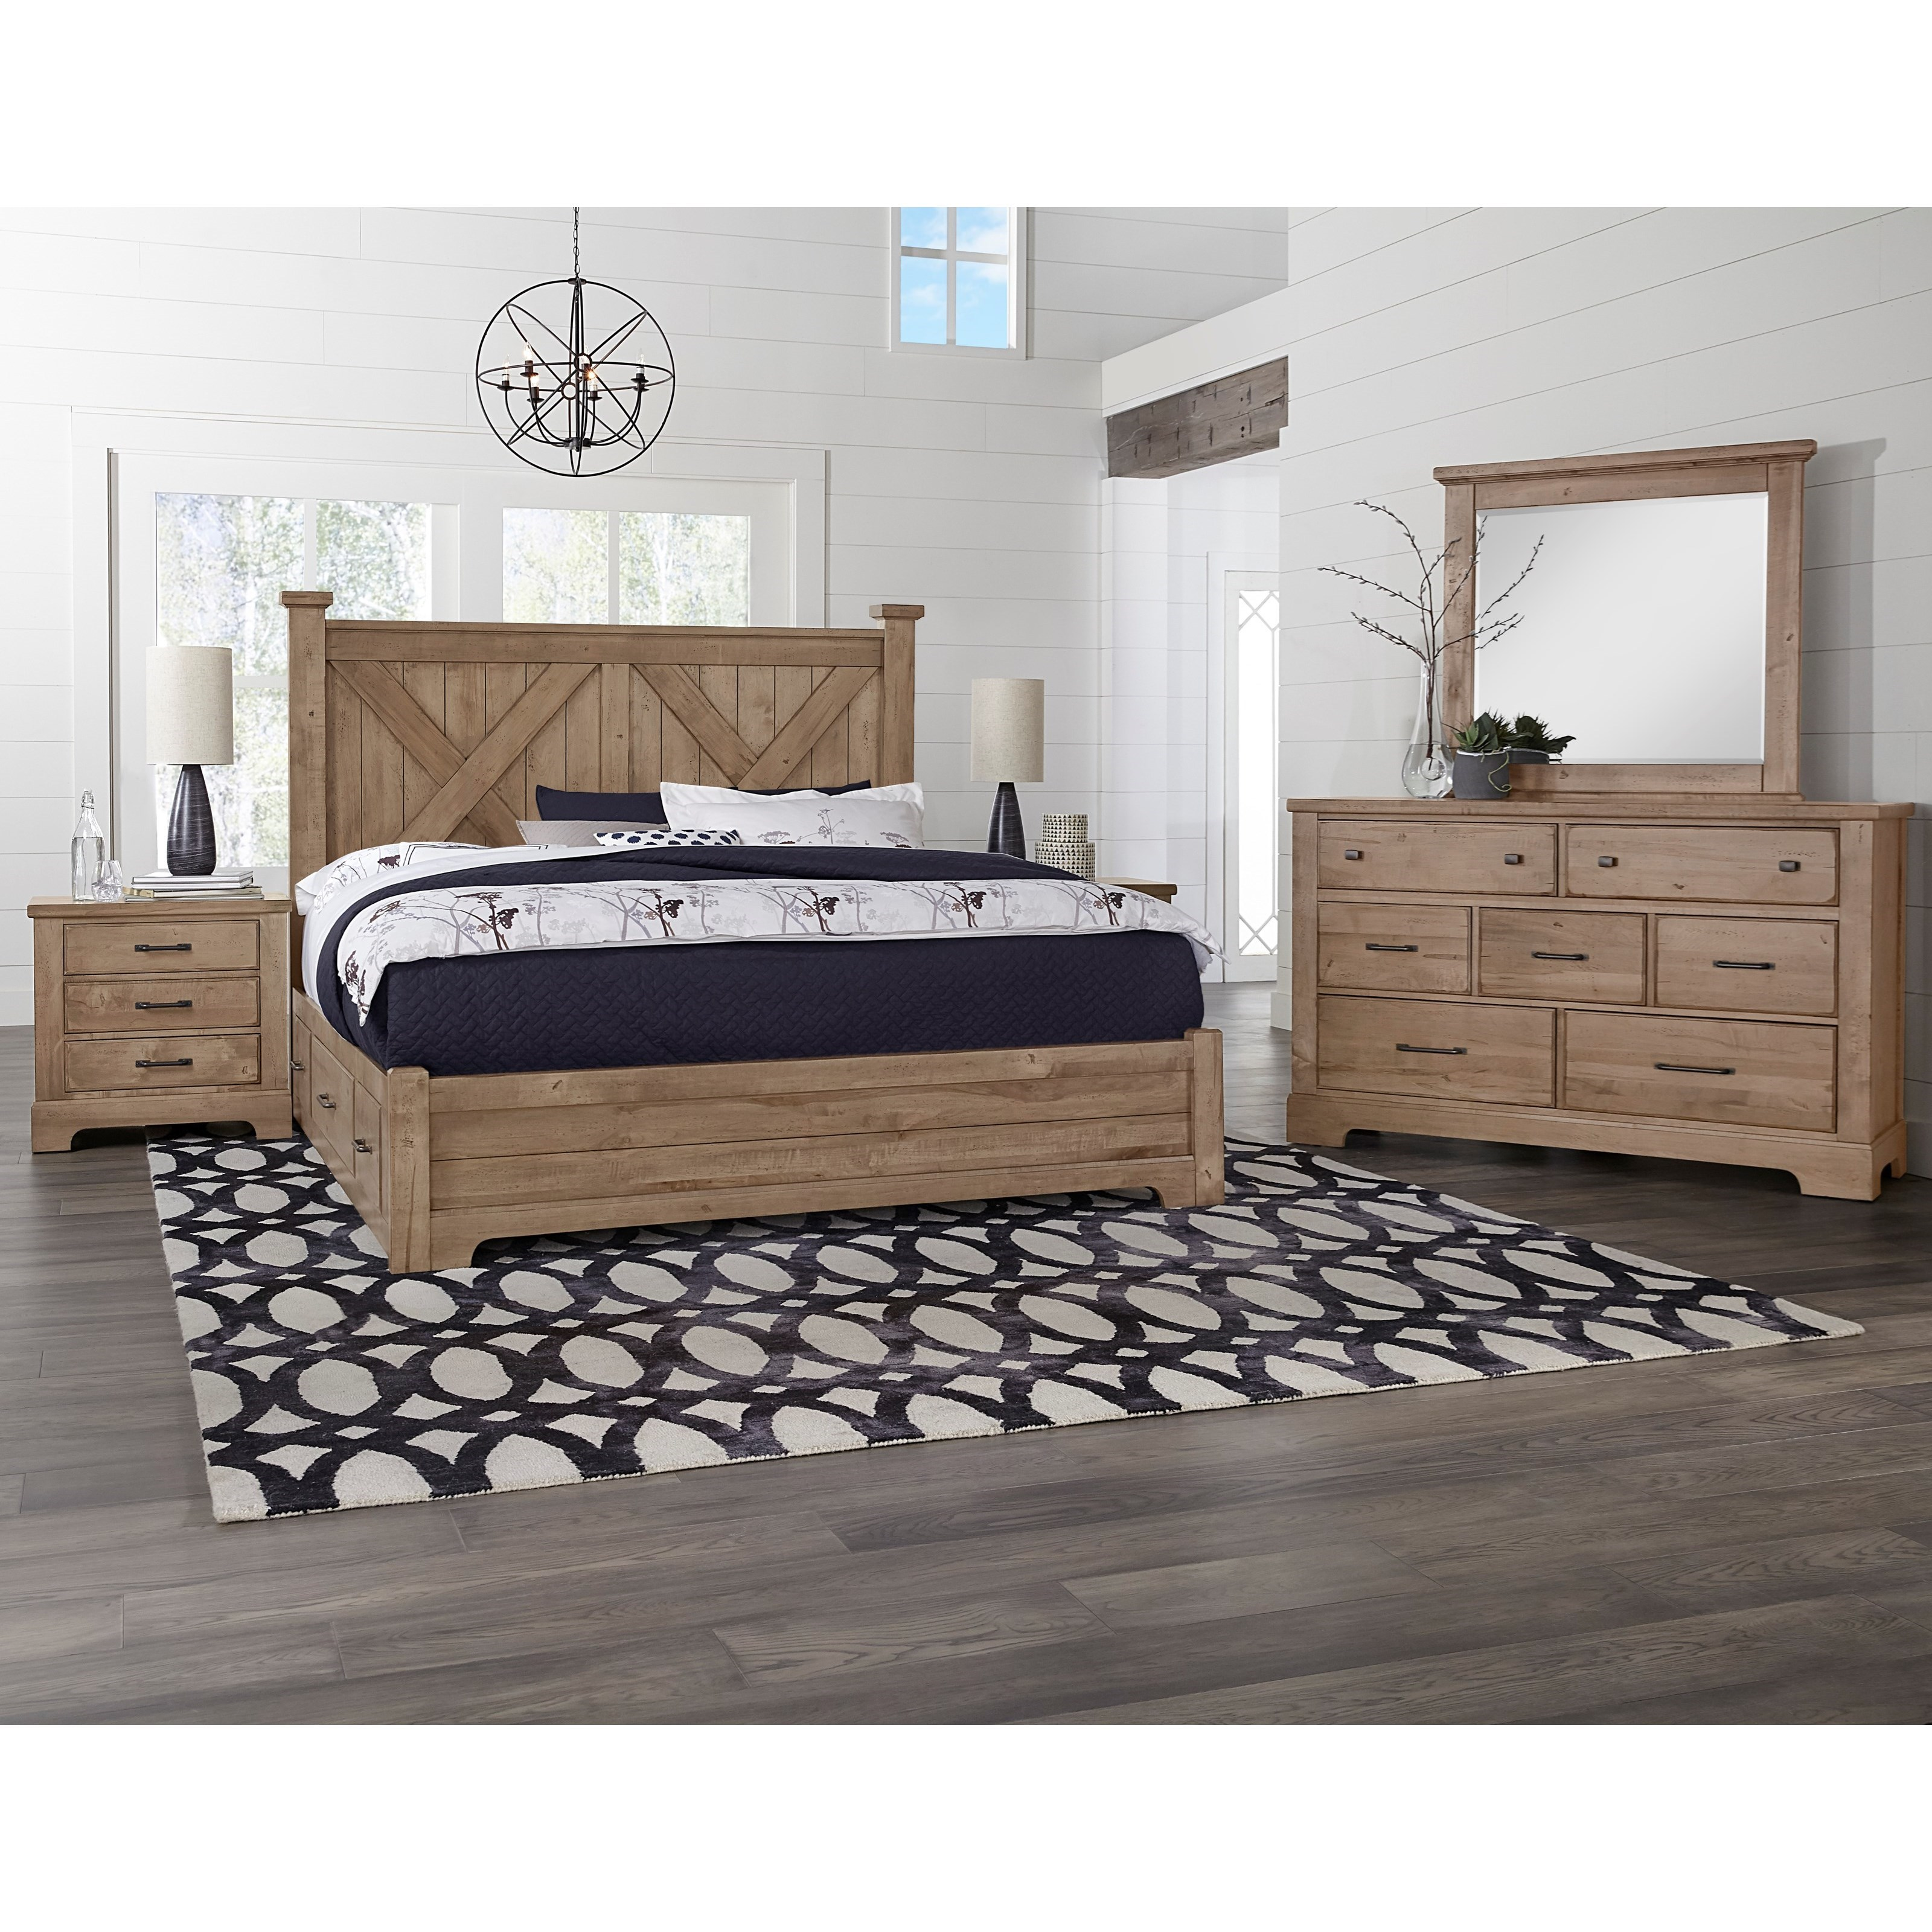 Cool Rustic King Bedroom Group by Artisan & Post at Mueller Furniture